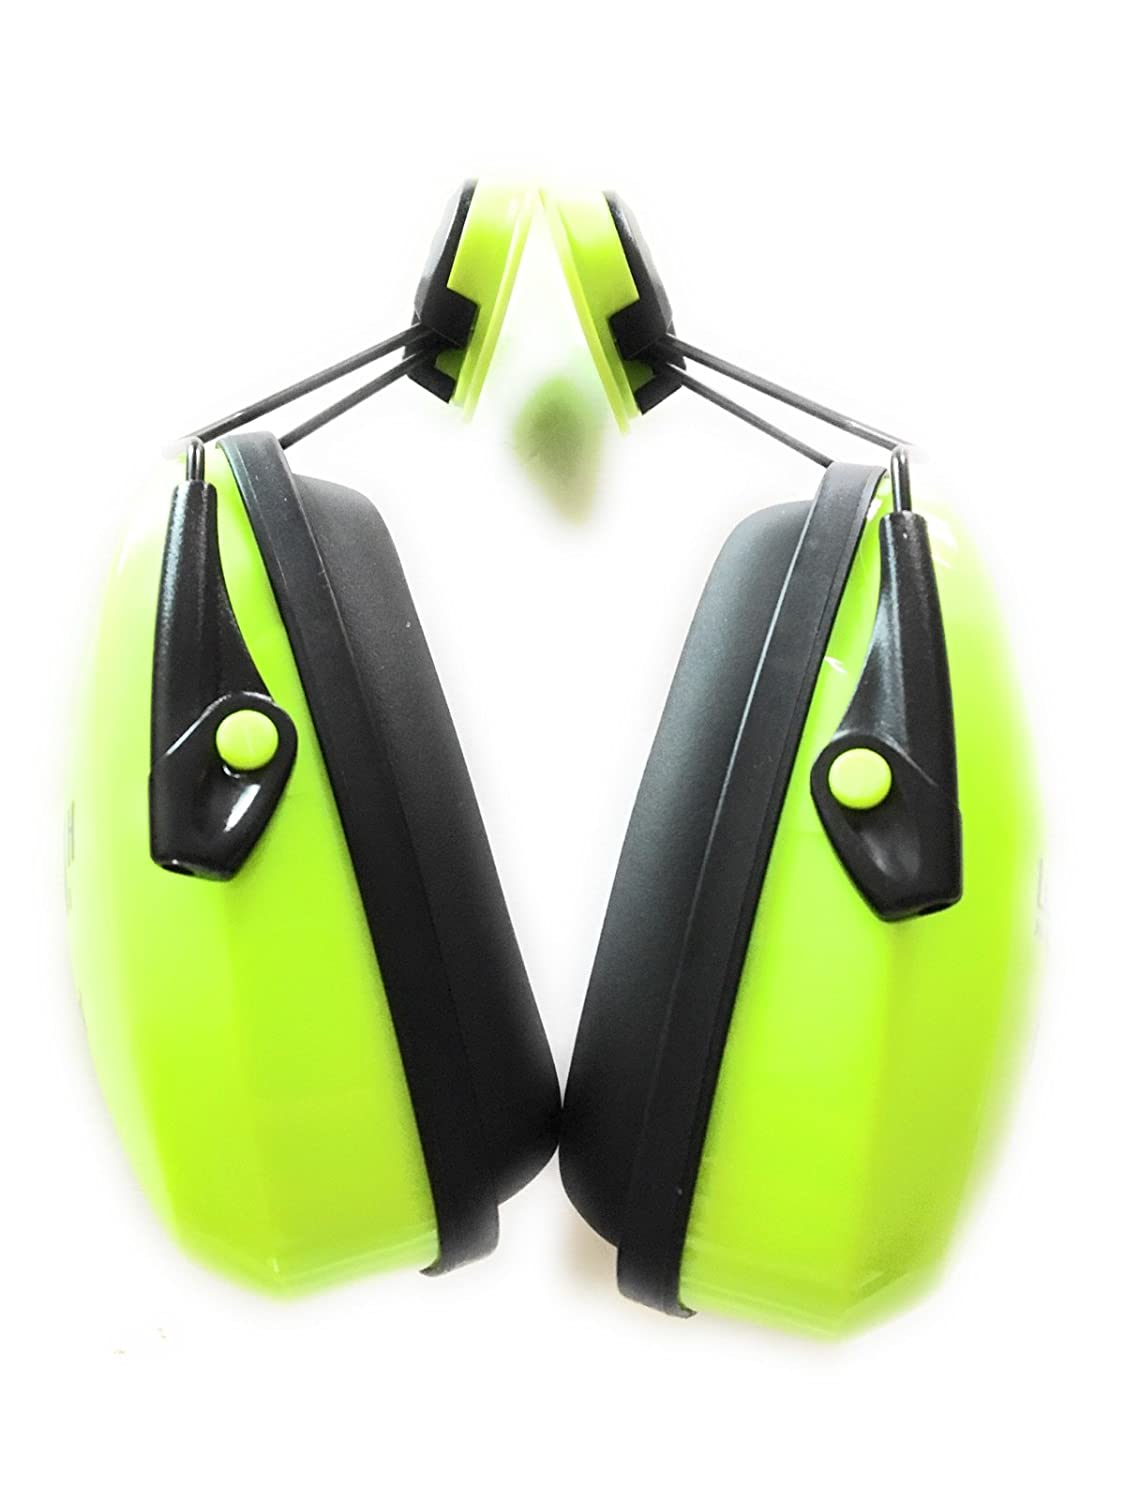 Amazon.com: Bilsom Leightning L1H Hi-Visibility Earmuffs: Sports & Outdoors